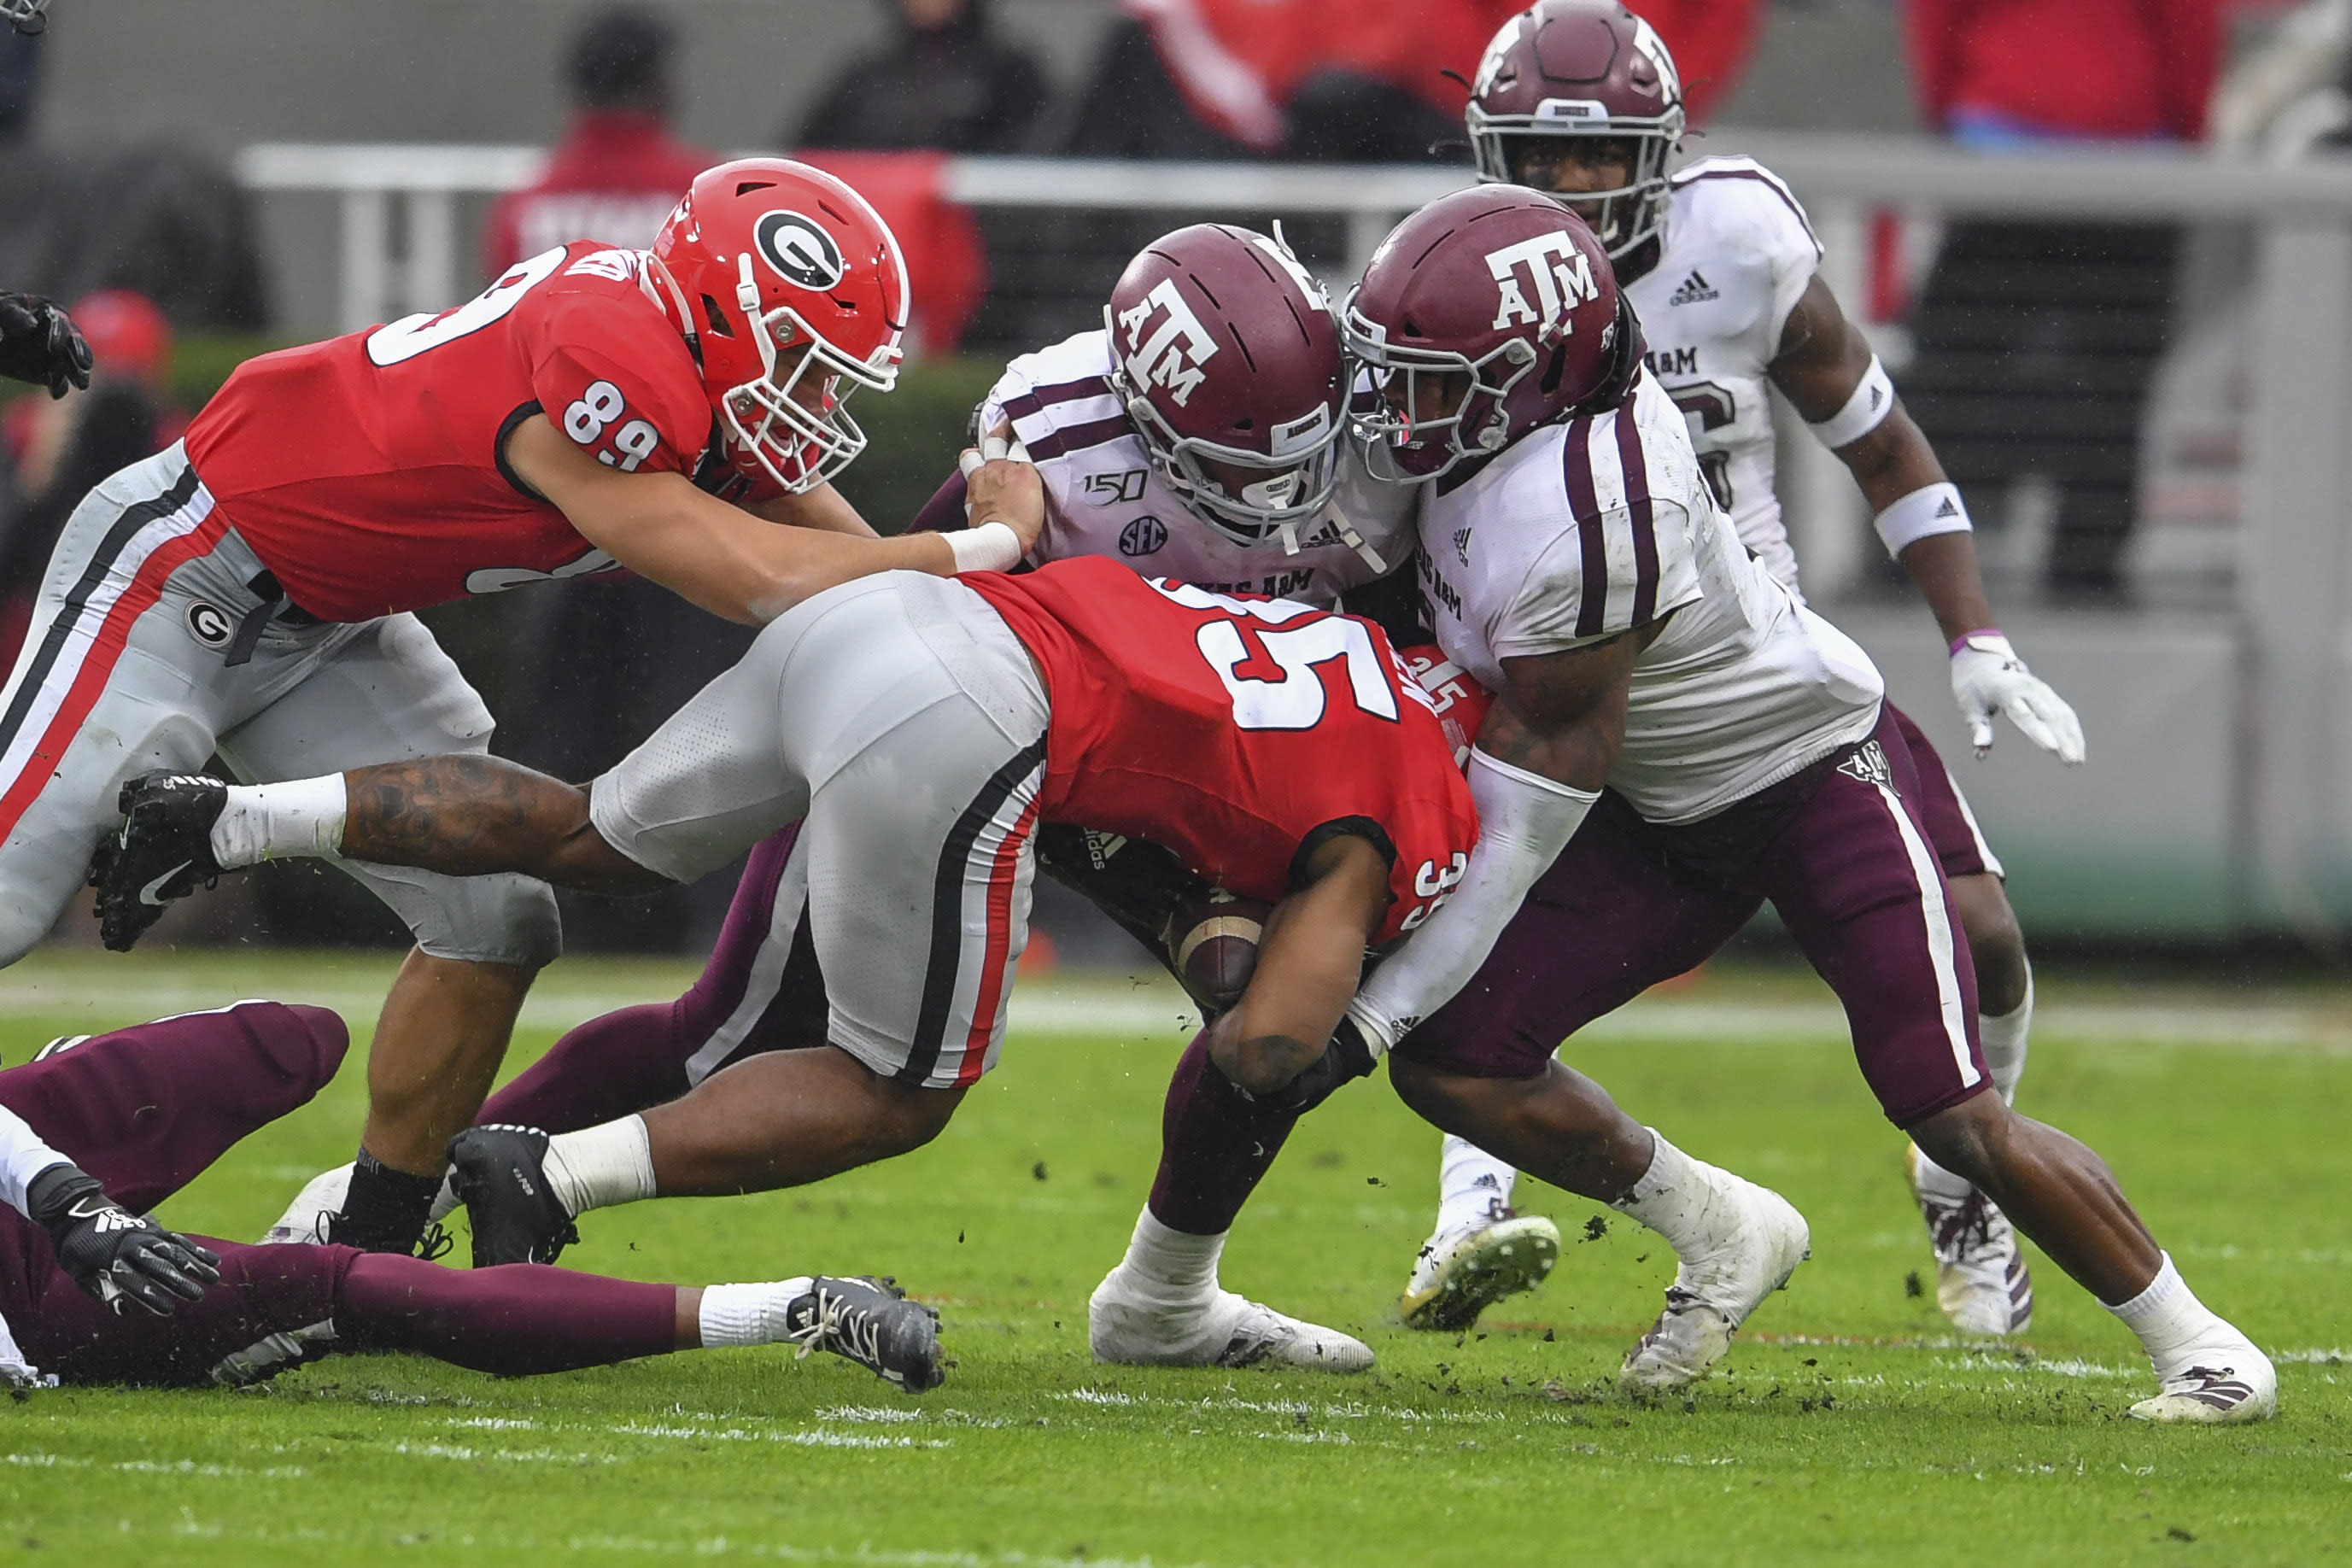 Live blog: Week 13 college football Saturday with Yahoo Sports